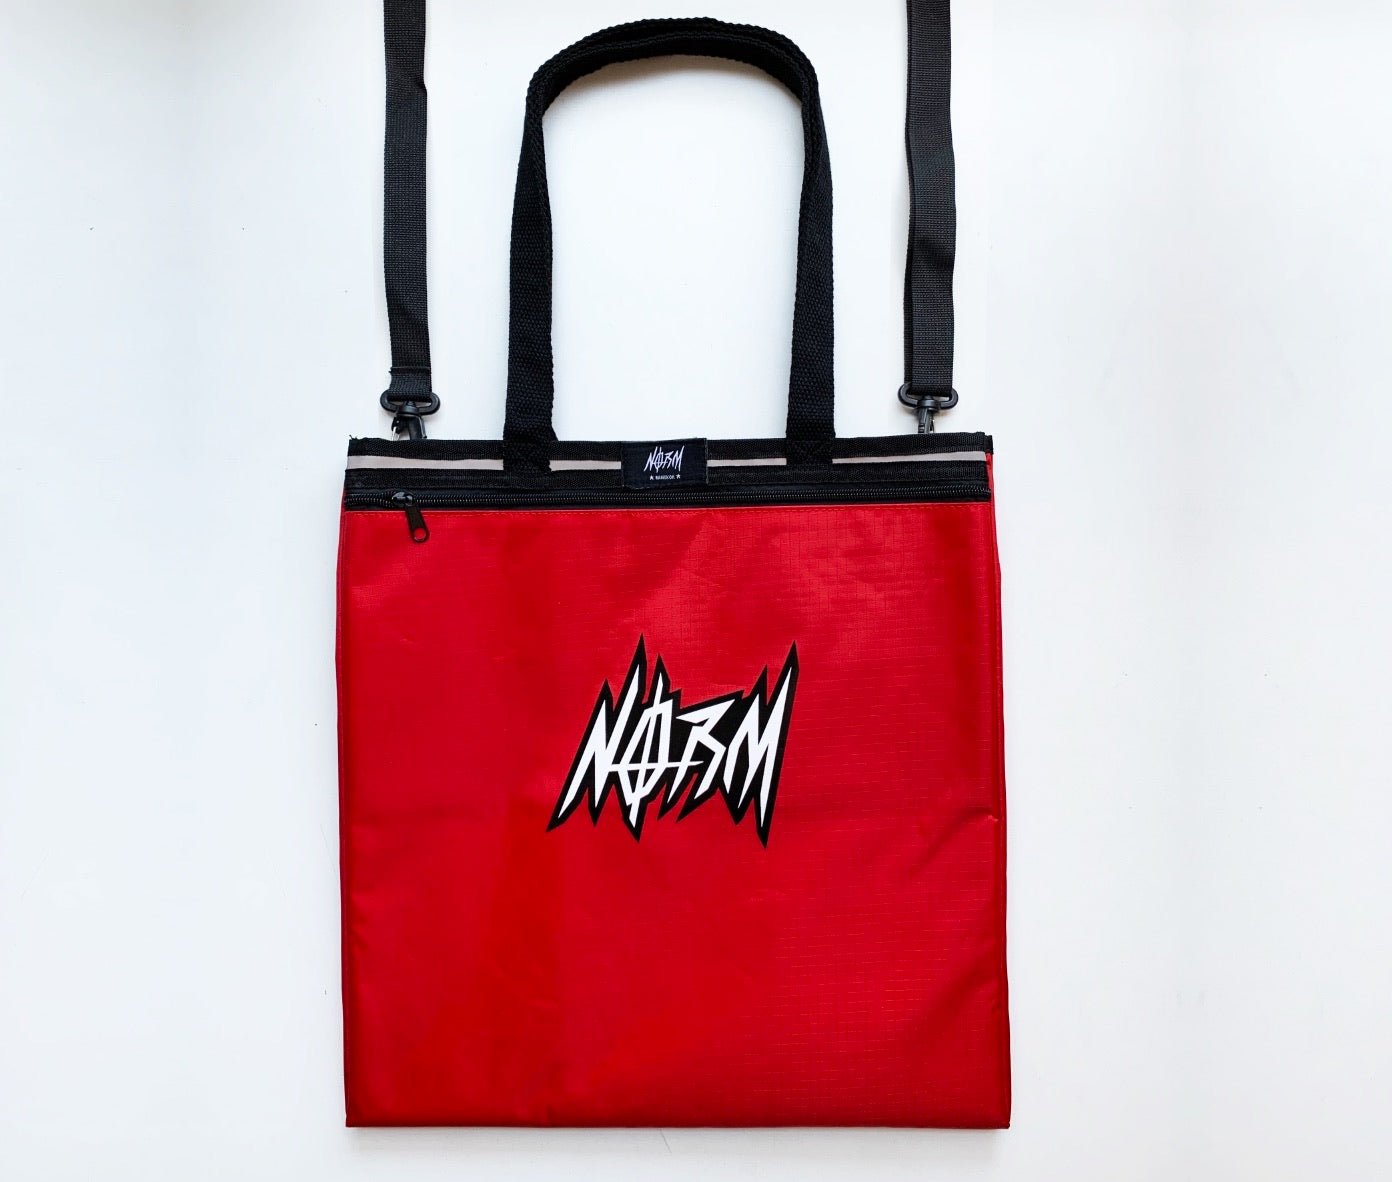 T-Tote bag Red